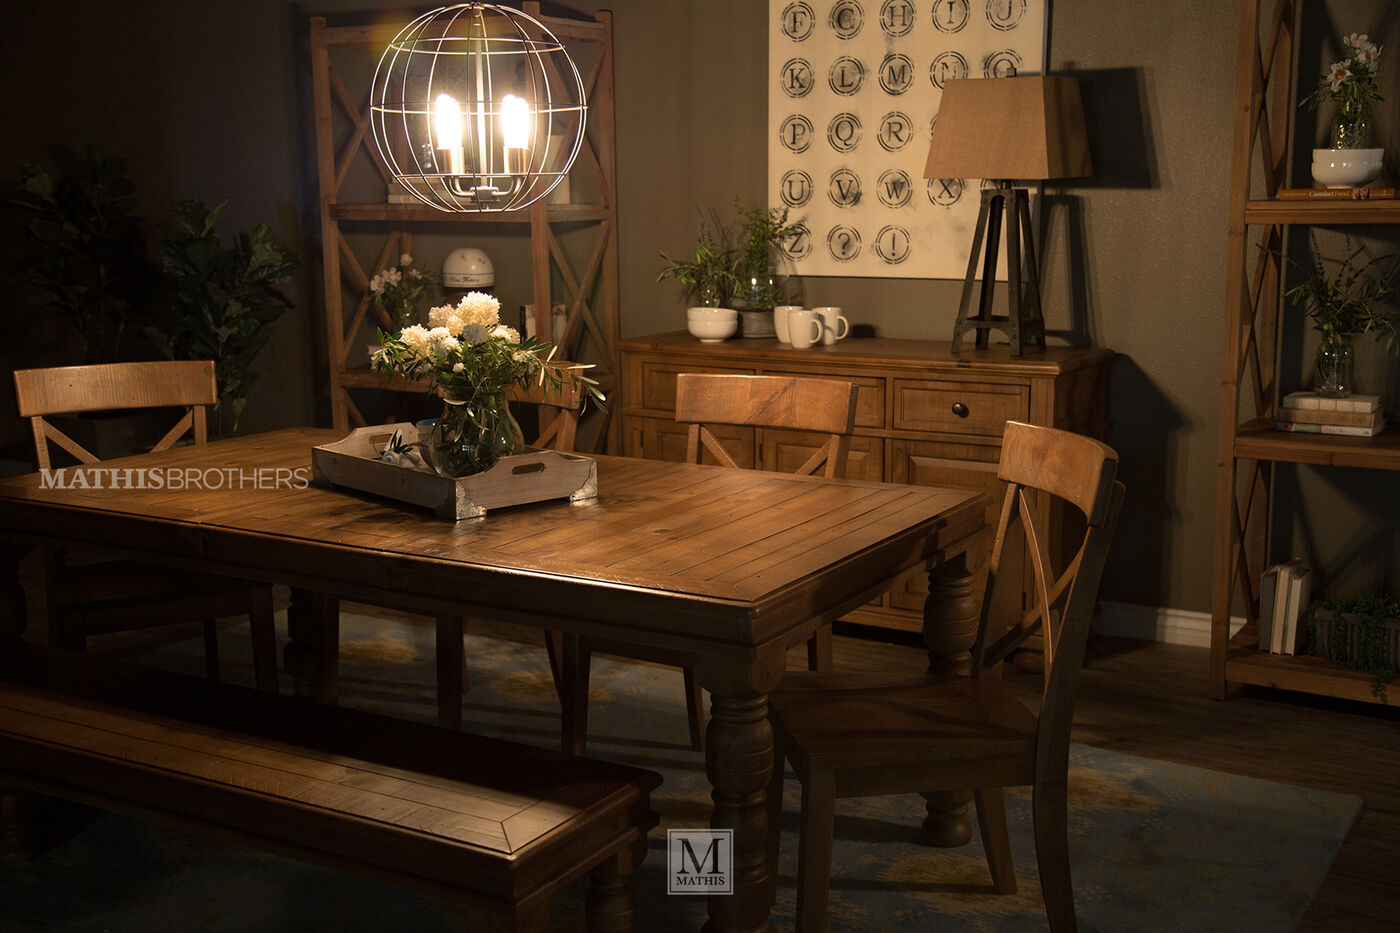 Six piece solid wood casual 78 39 39 dining set in light brown for Casual dining lighting